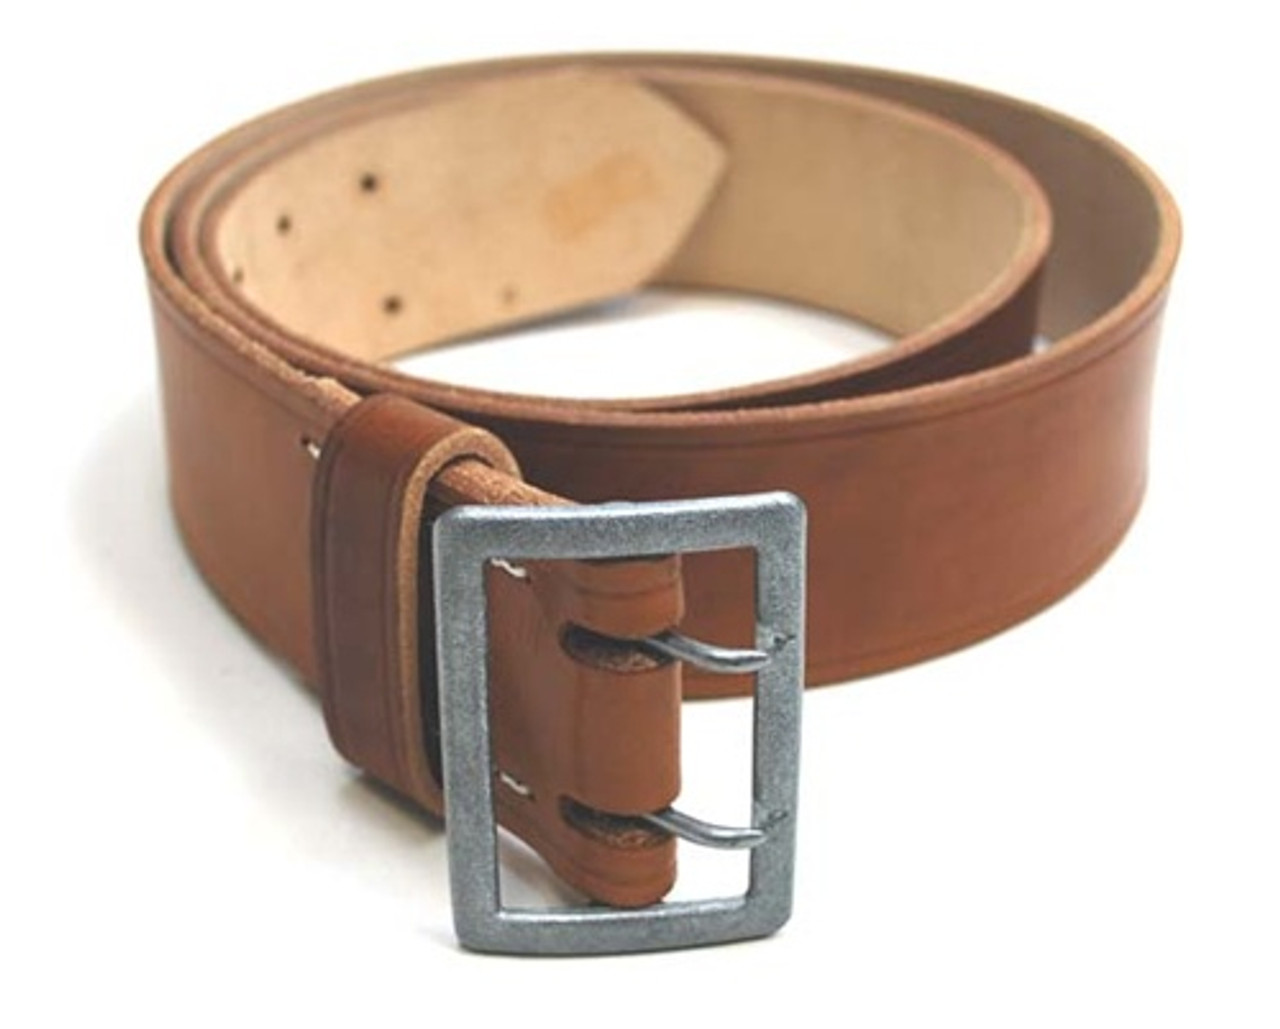 Officer's Brown Leather Belt from Hessen Antique